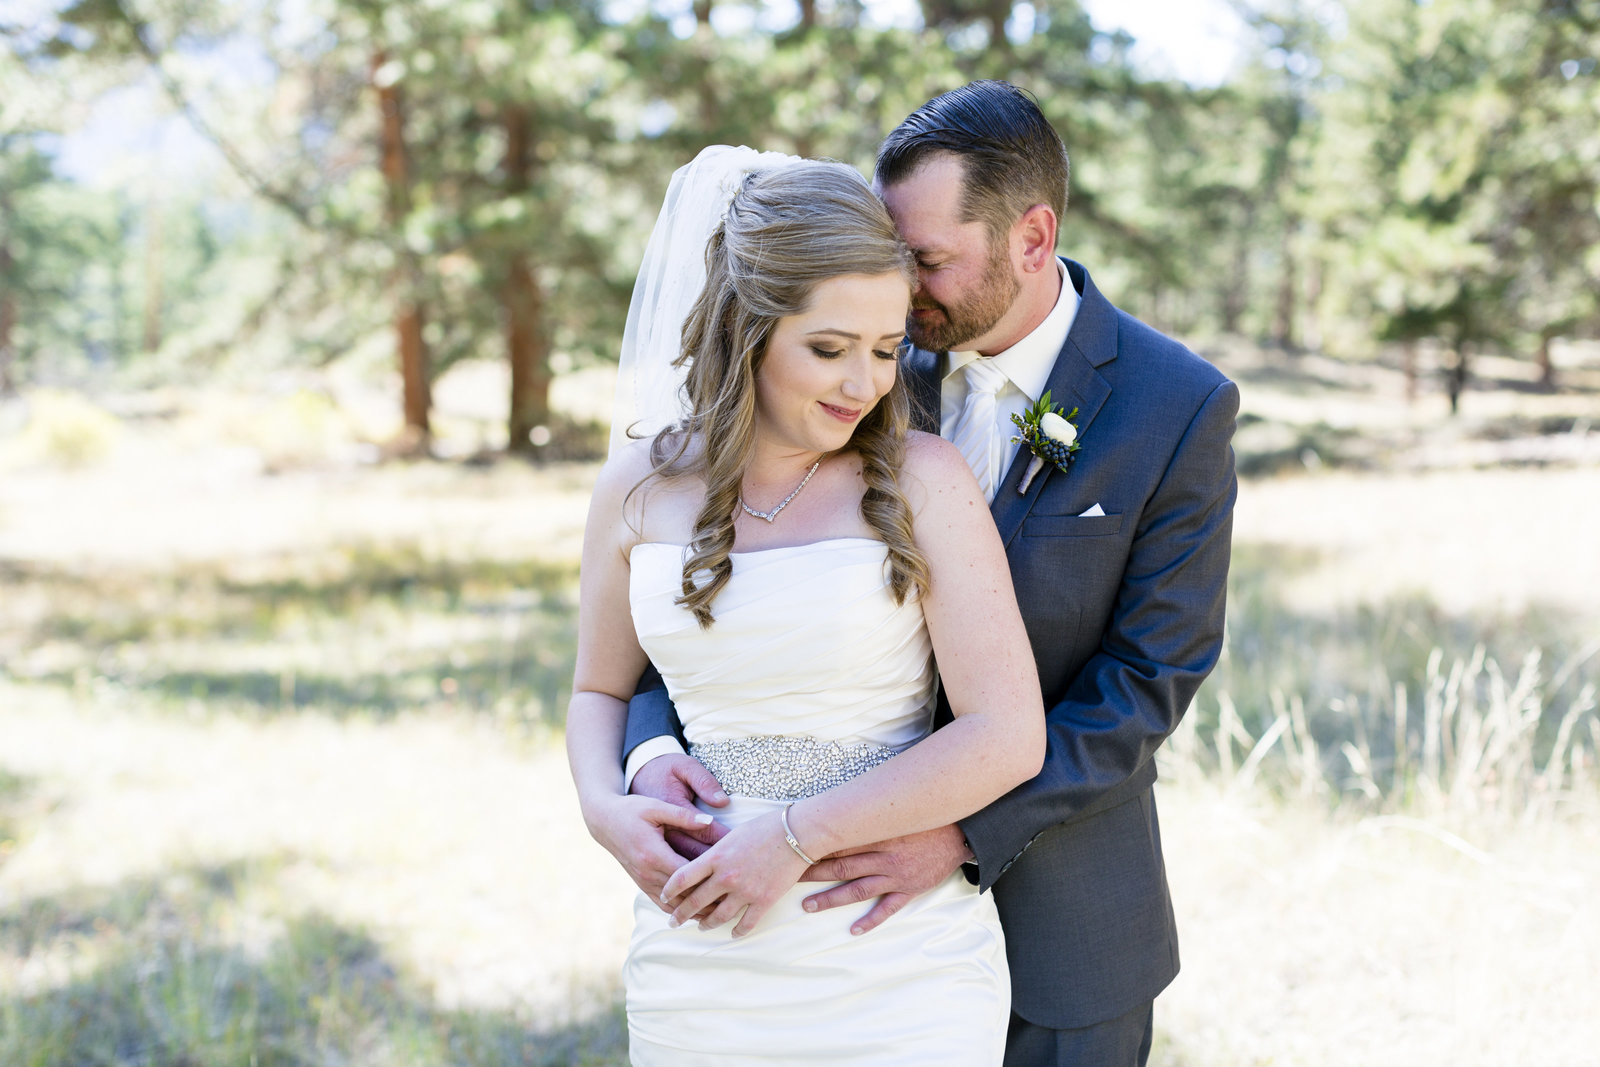 Jessi-Zach-Photography-Colorado-Mountain-Wedding-Photographer-Della-Terra-Mountain-Chateau_67